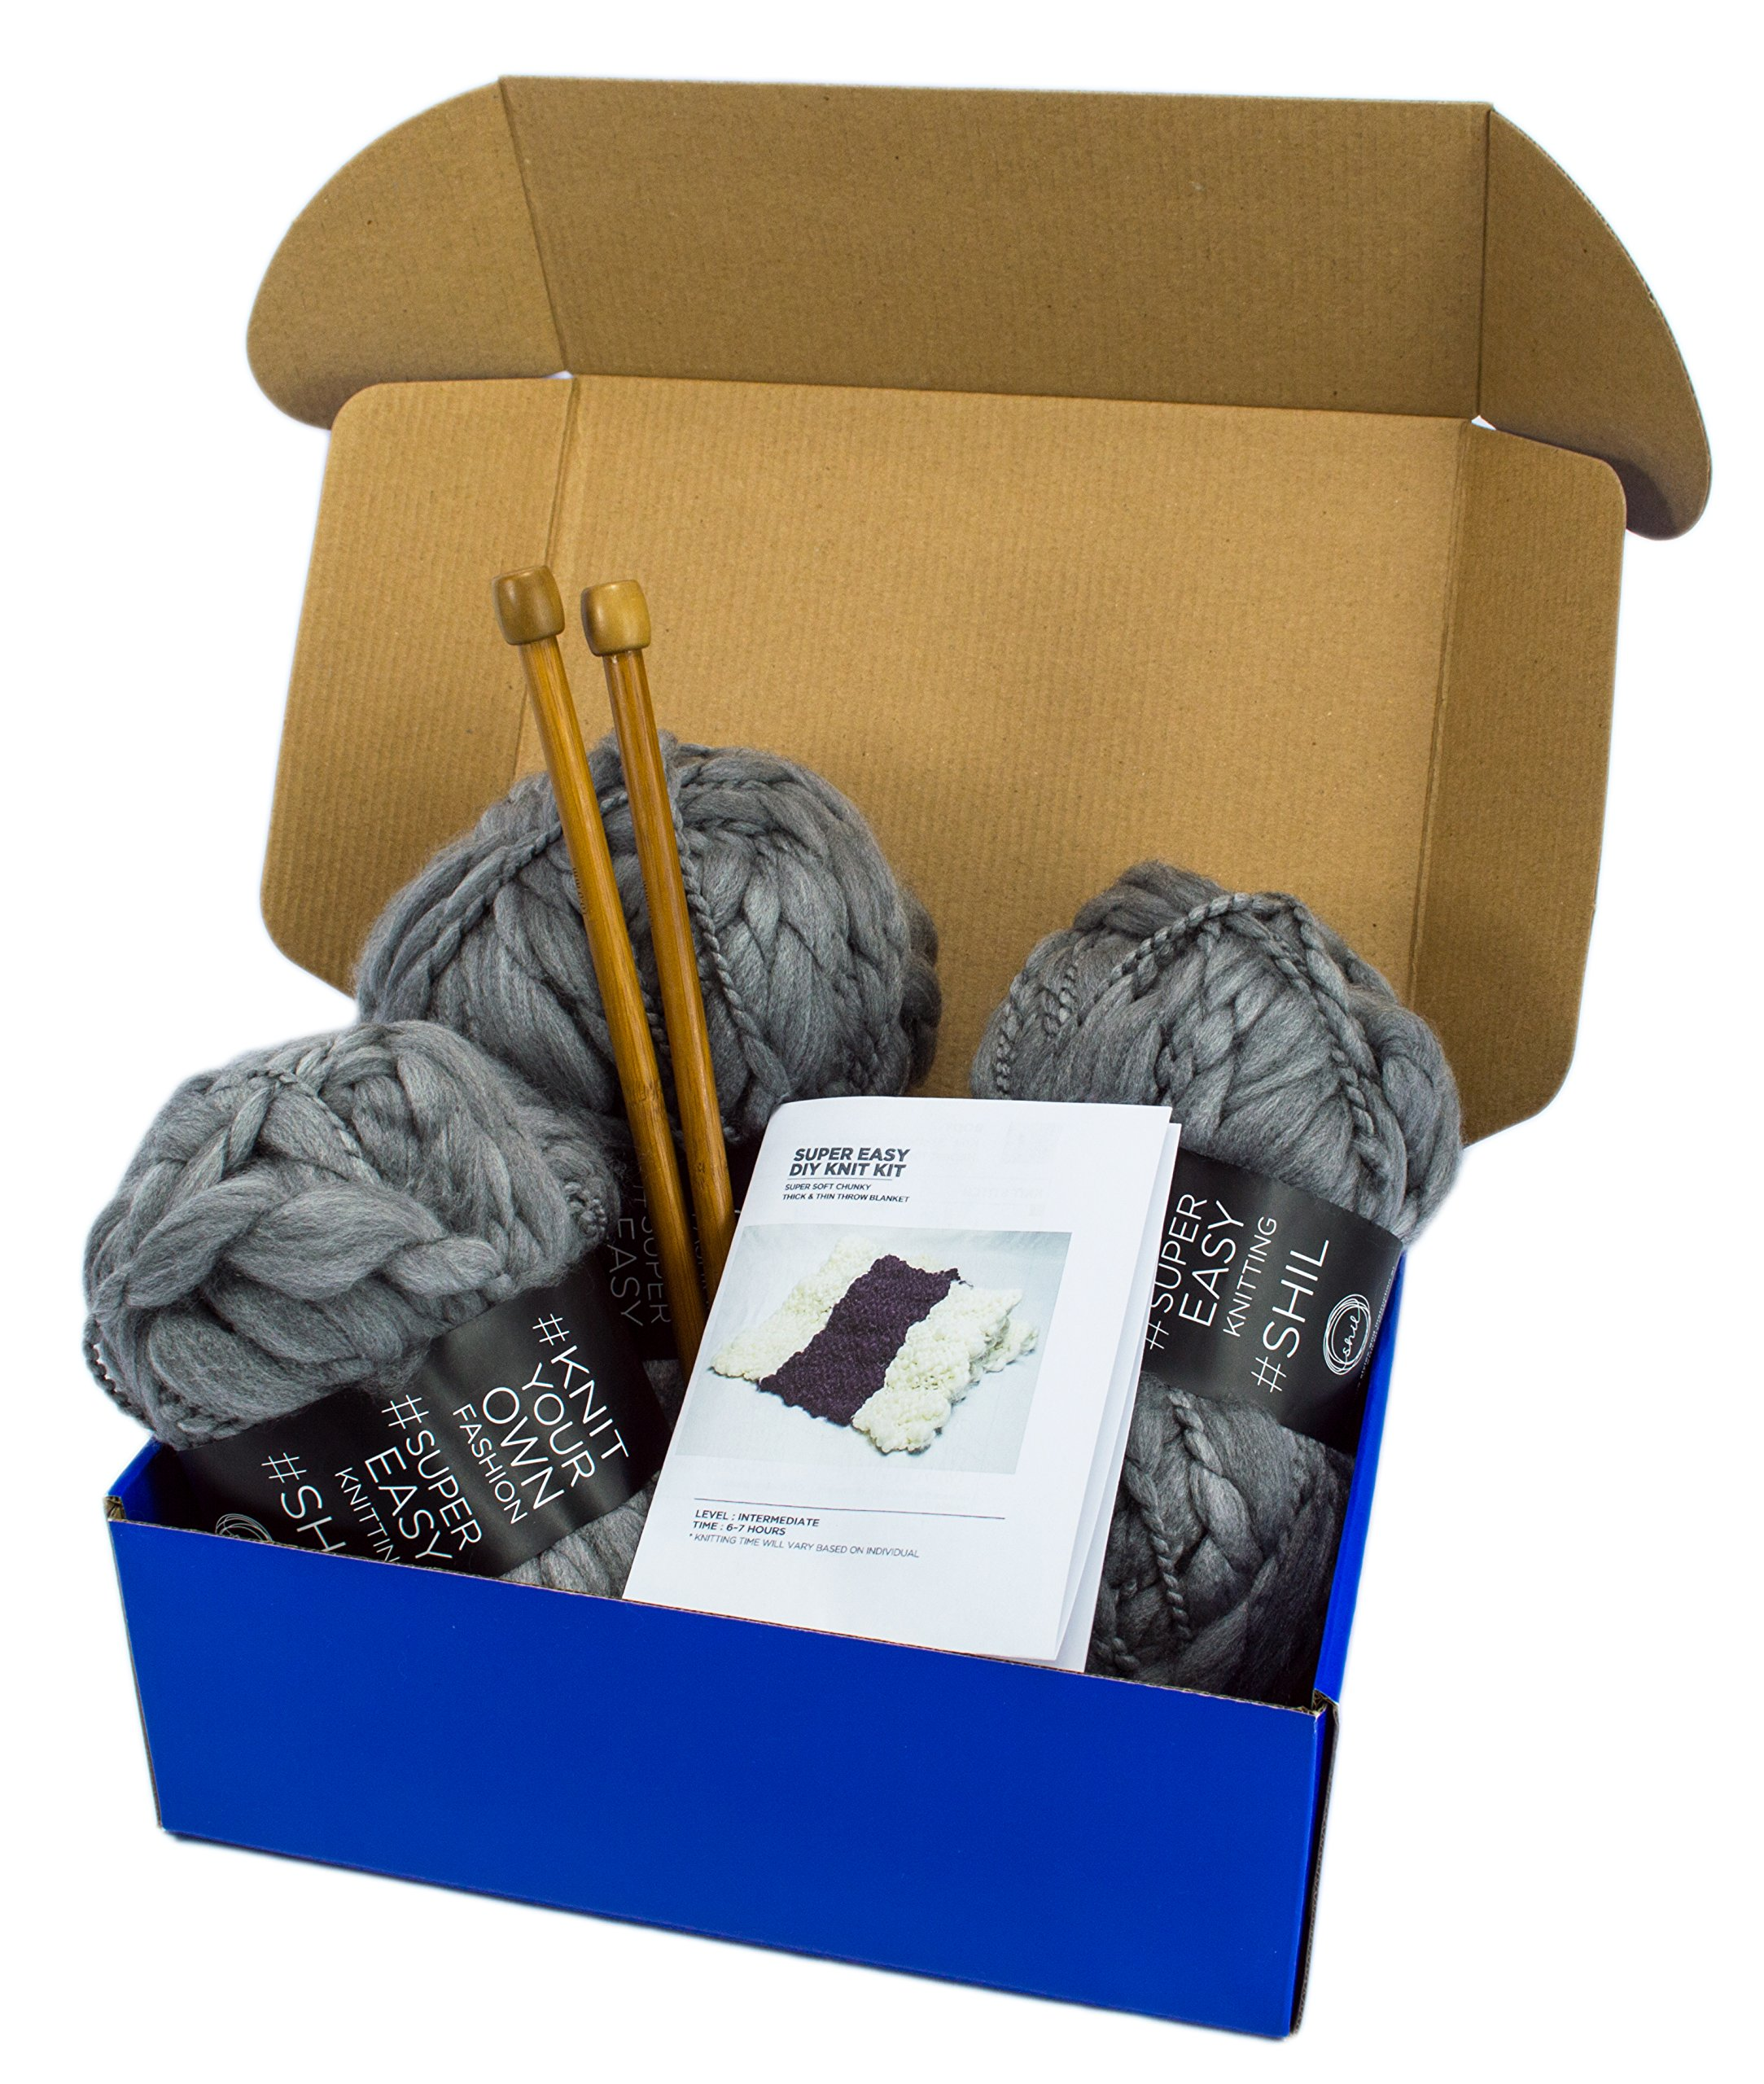 DIY Knitting Blanket Kit Super Soft Thick and Thin Bulky Yarn US 15 Needles (Charcoal Grey)